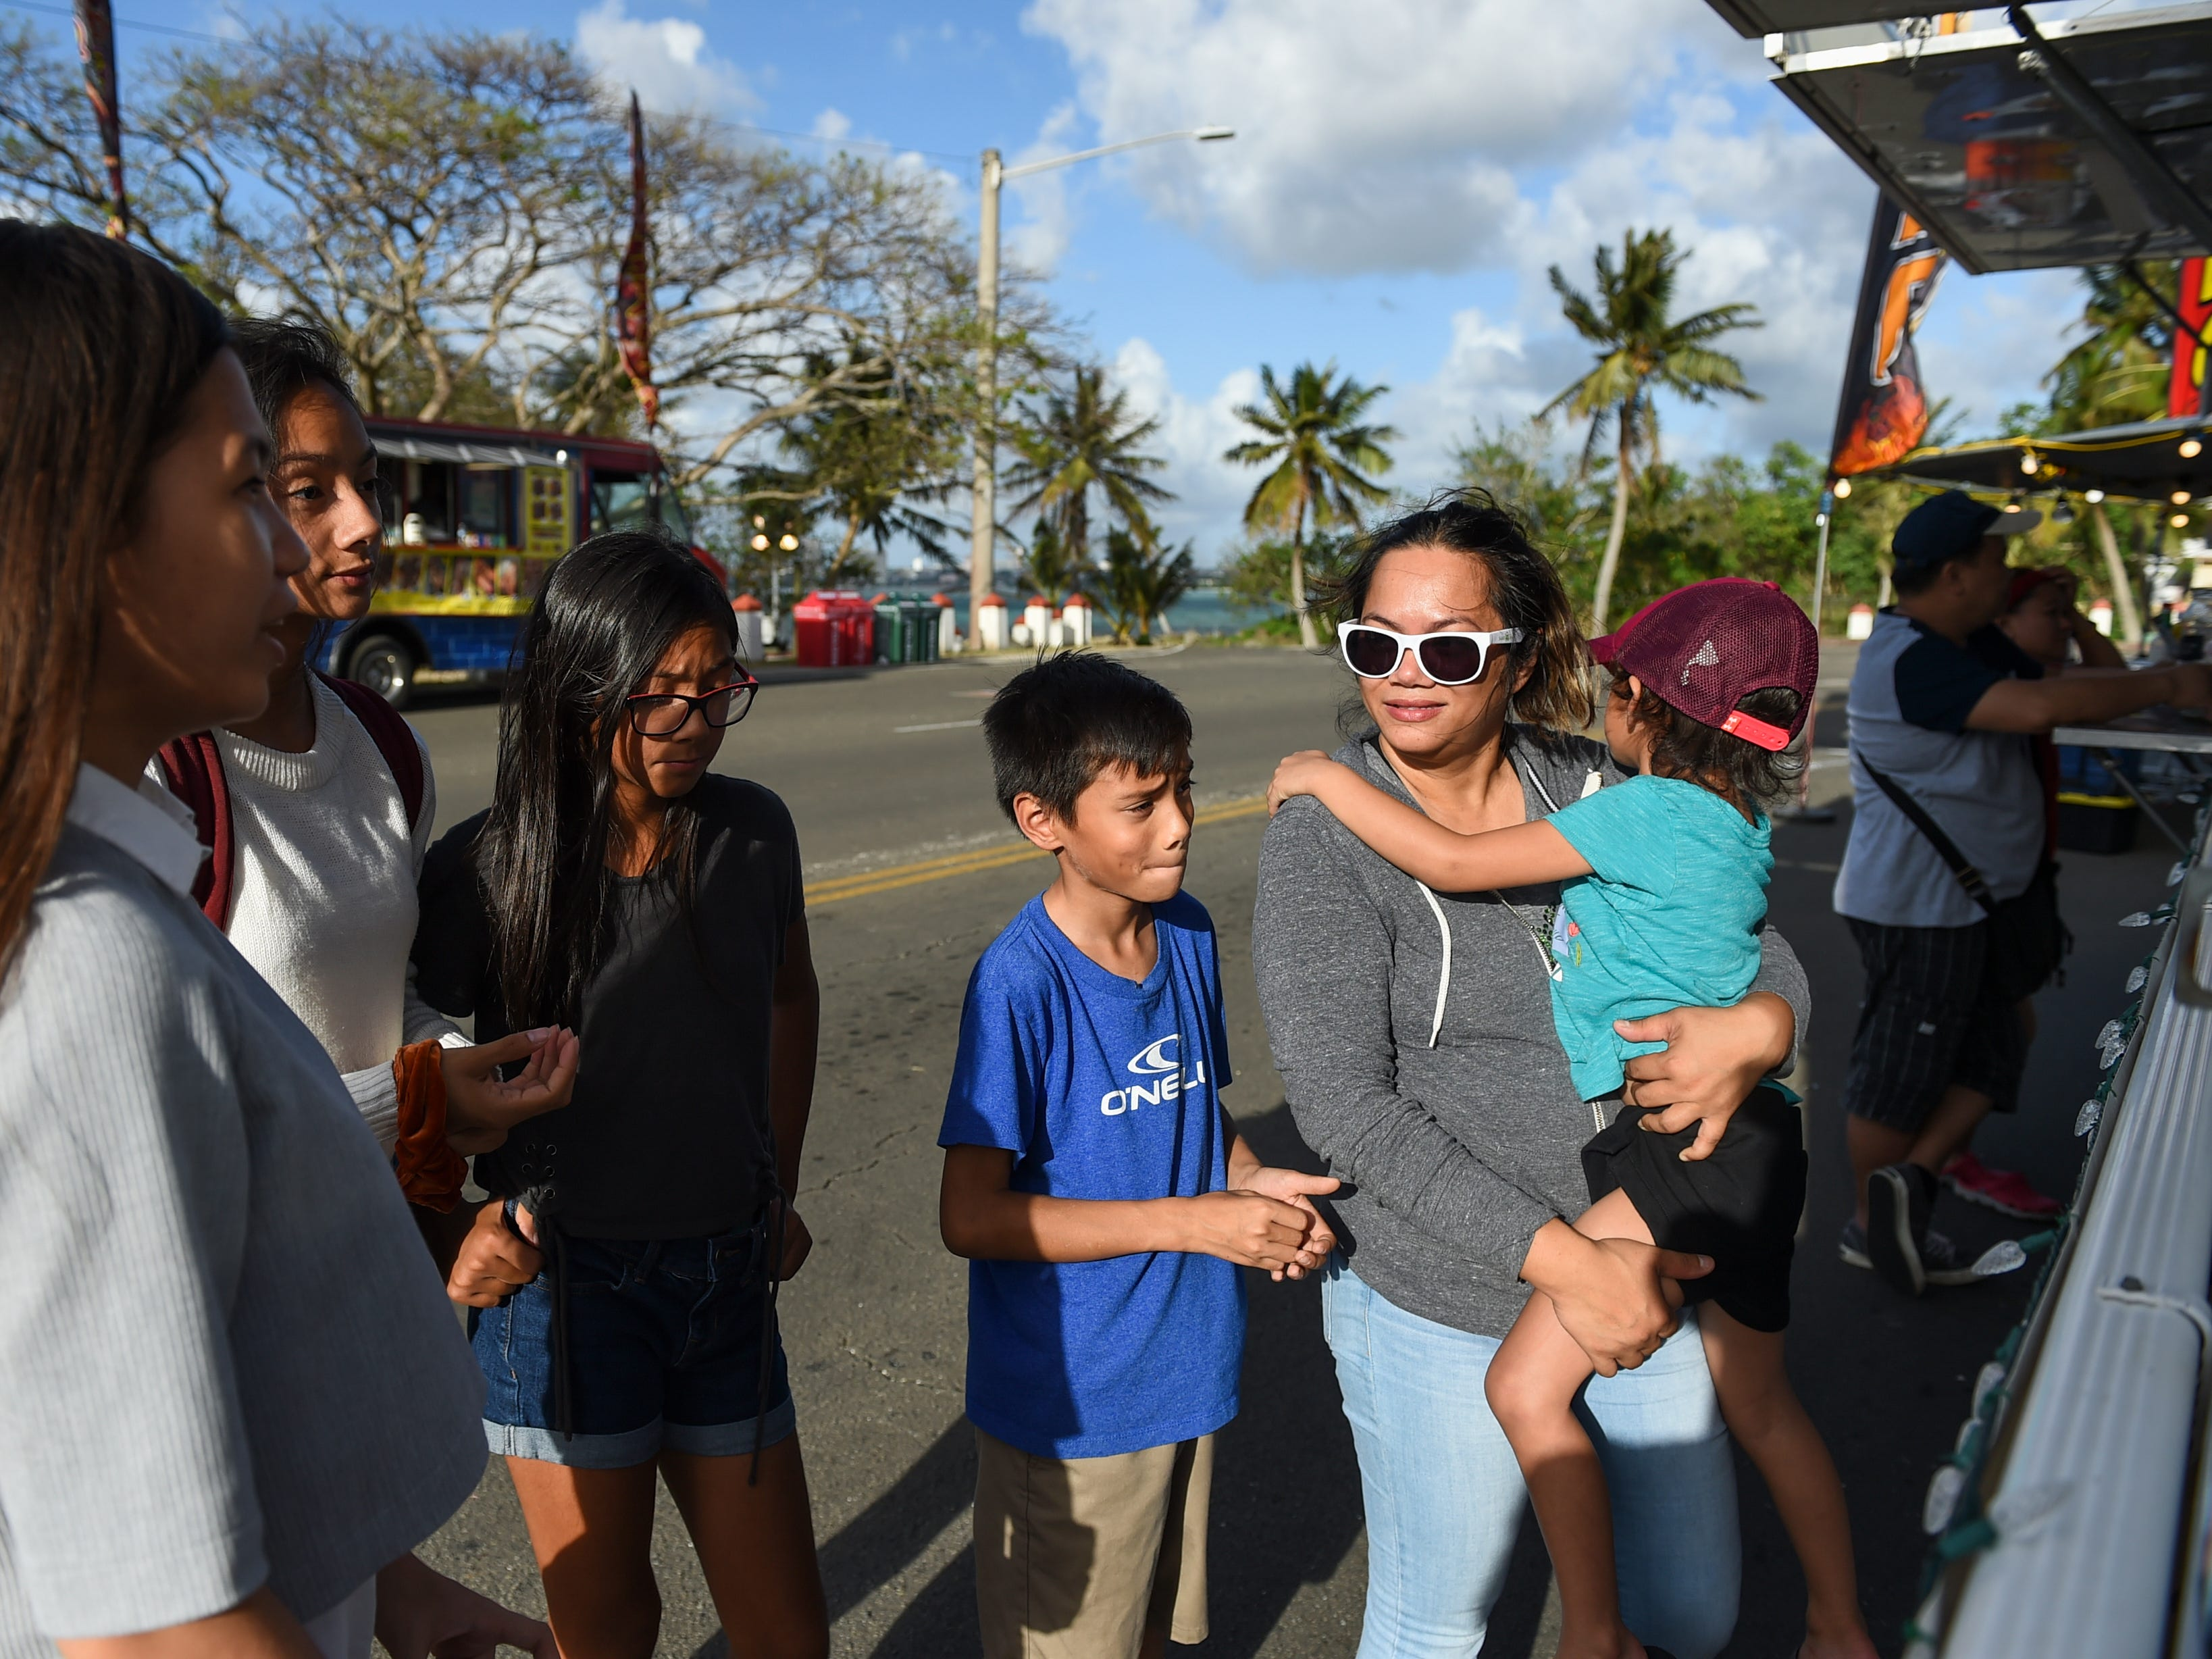 A family places an order at a food truck during the Bank of Guam Ifit Run and Block Party at Chamorro Village in Hagåtña, March 9, 2019.